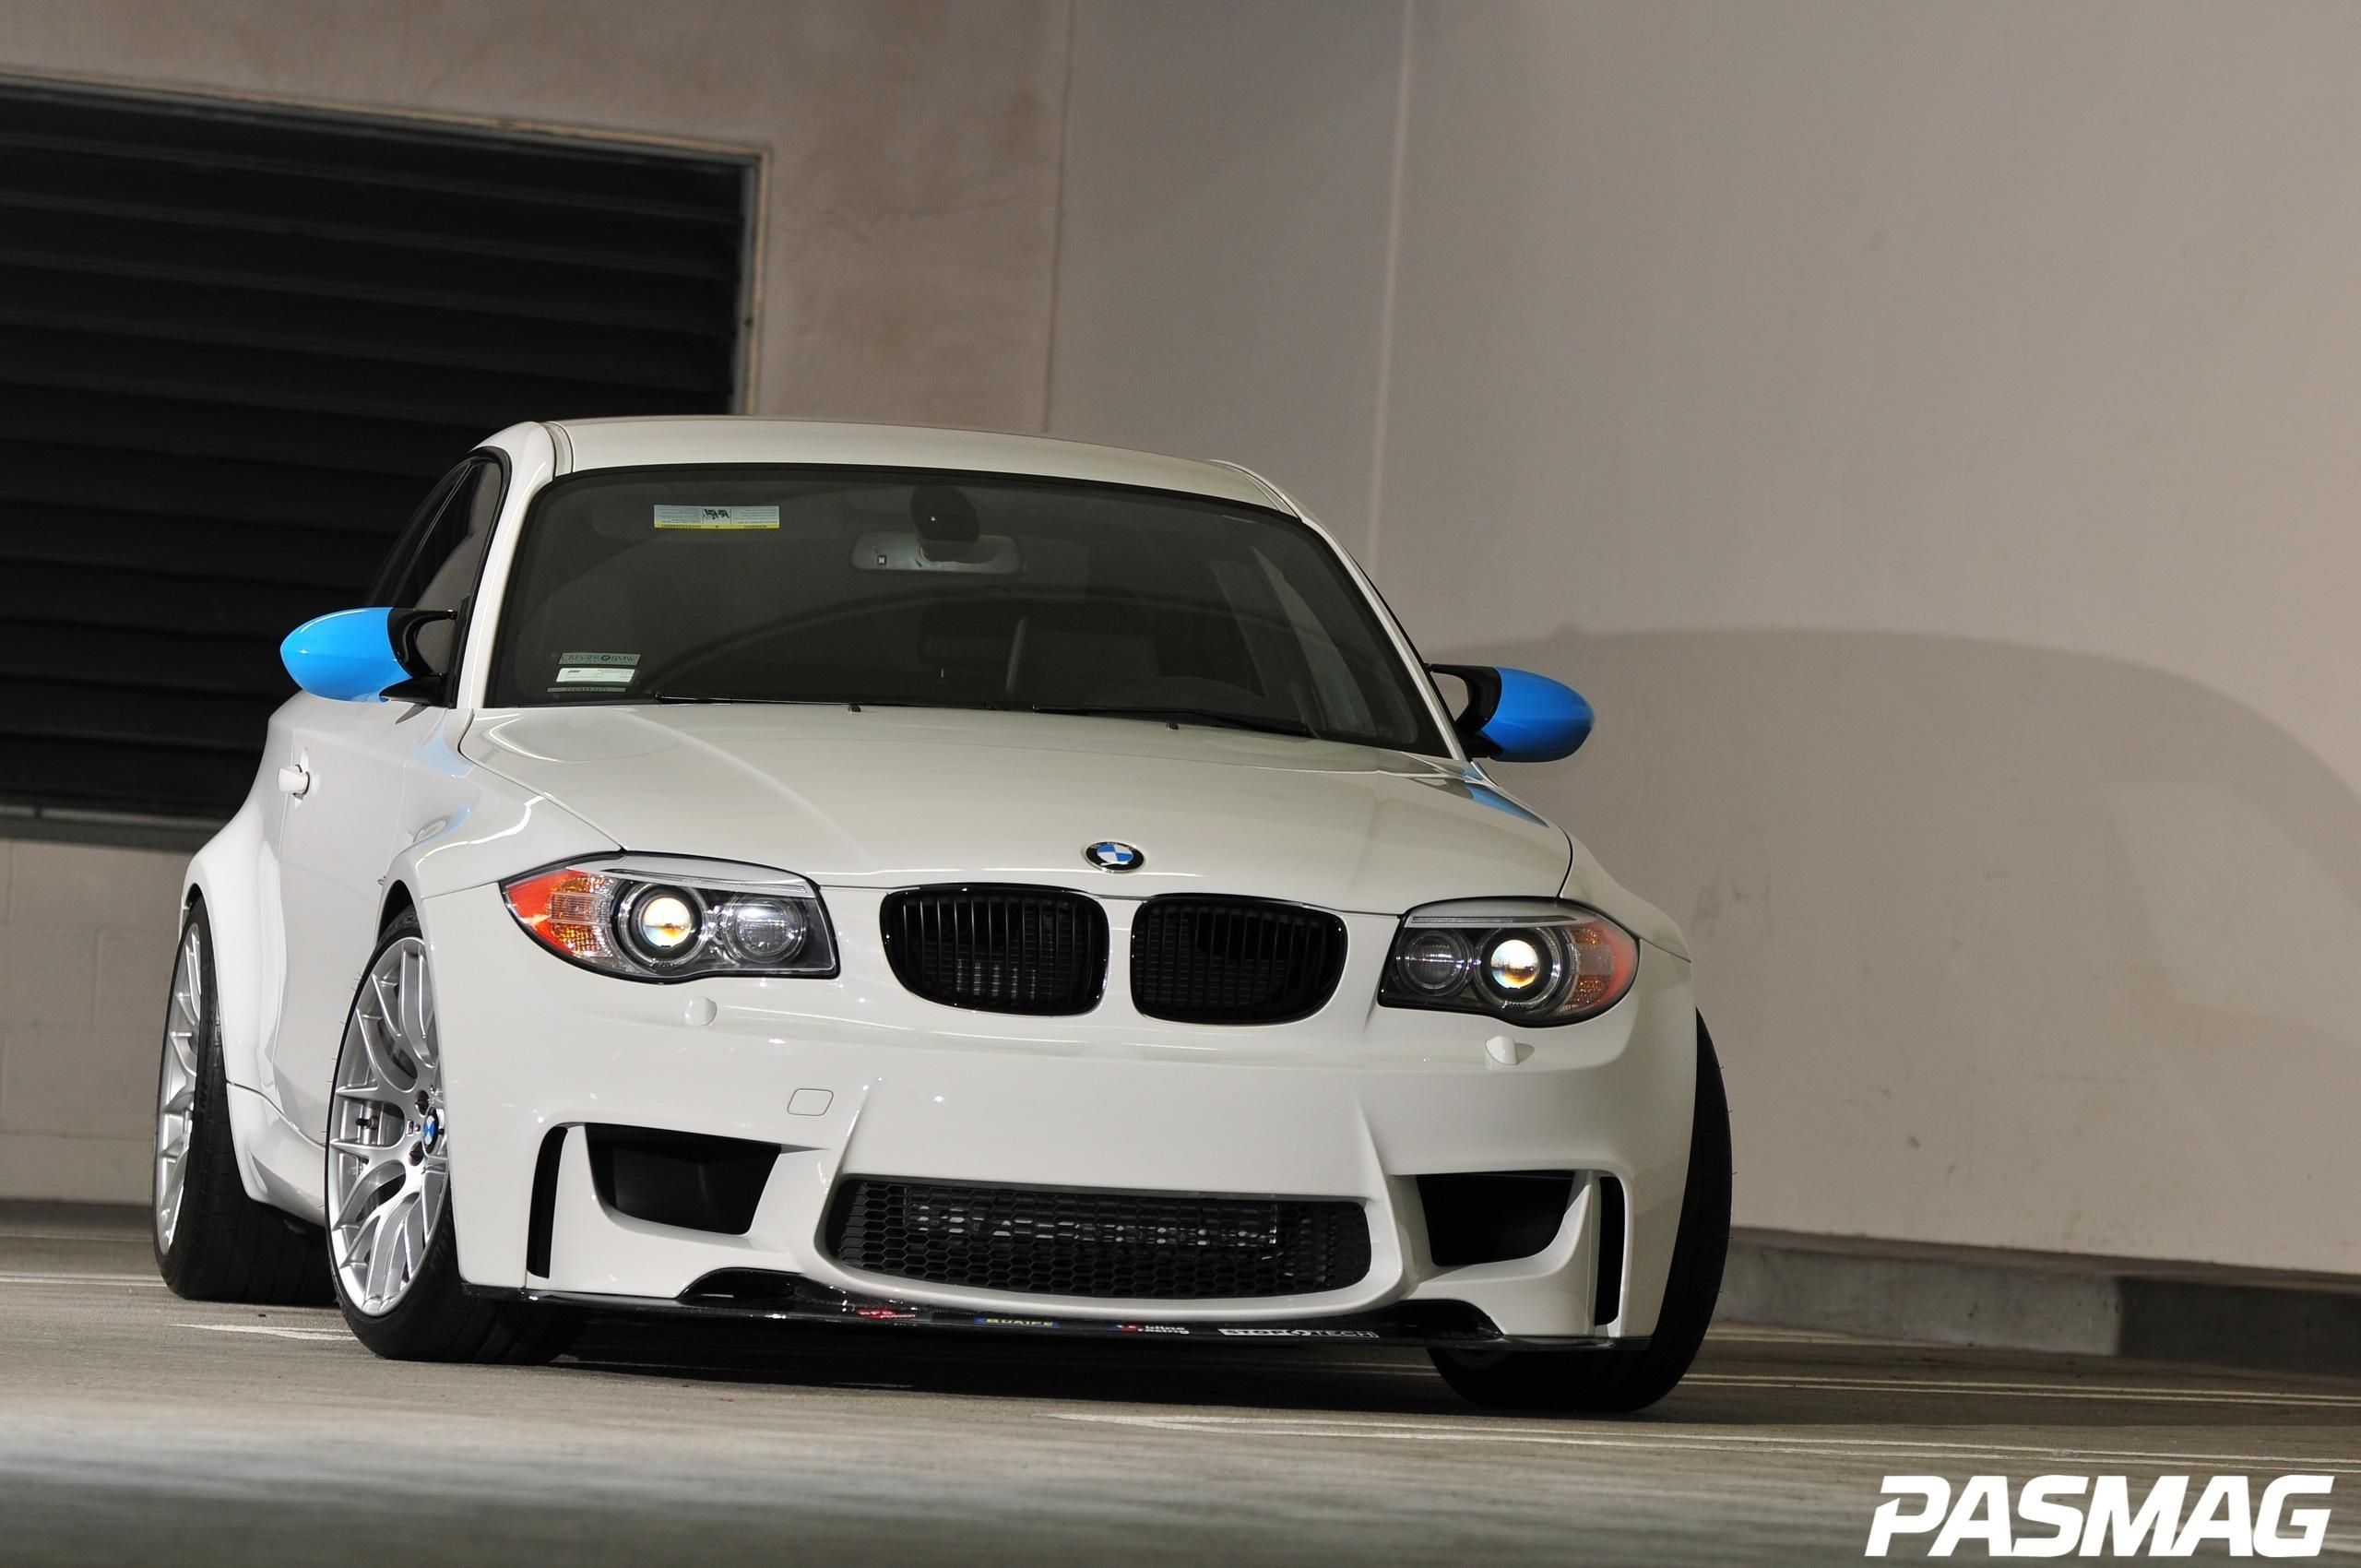 PASMAG PERFORMANCE AUTO AND SOUND What Price For Perfection - Bmw 135 price